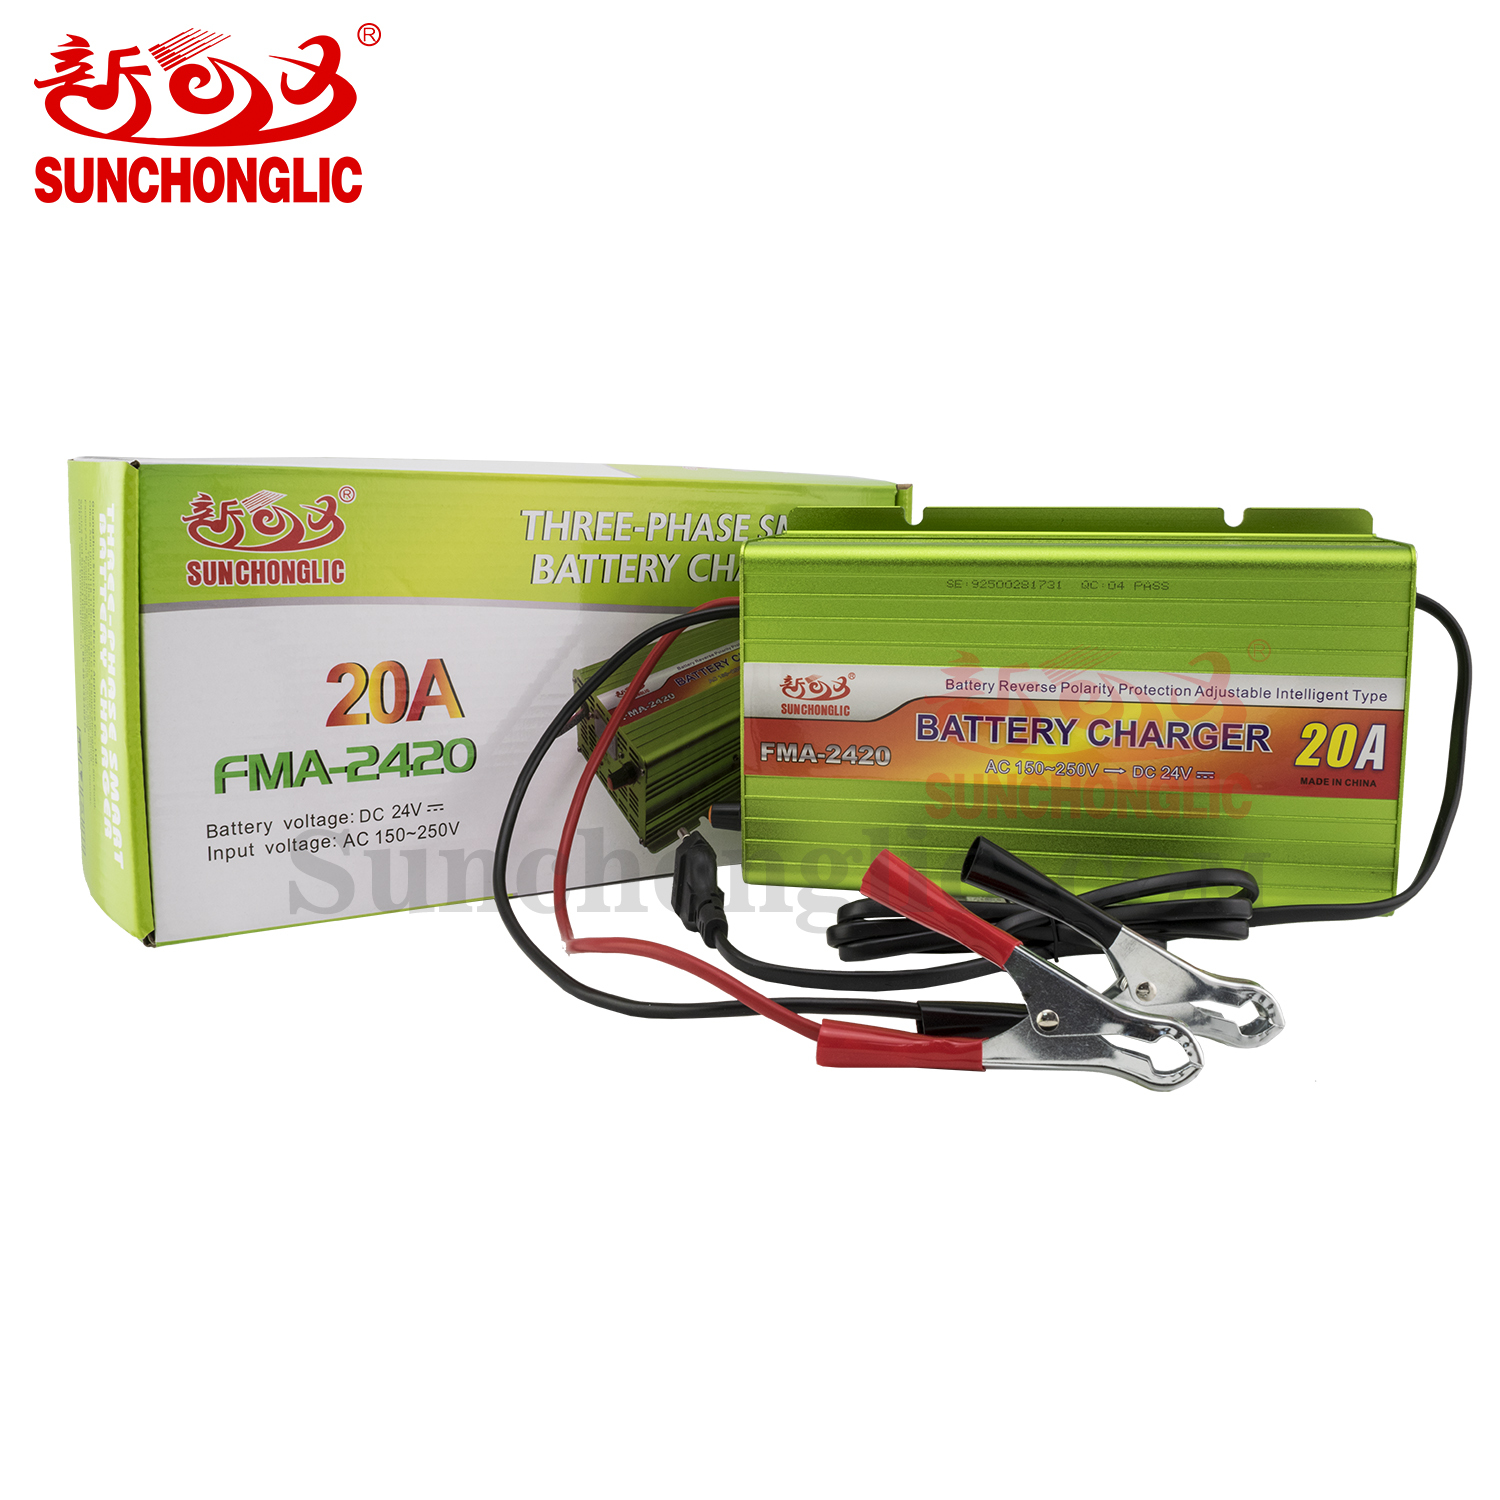 Sunchonglic 24V 20A three-phase lead acid car battery charger